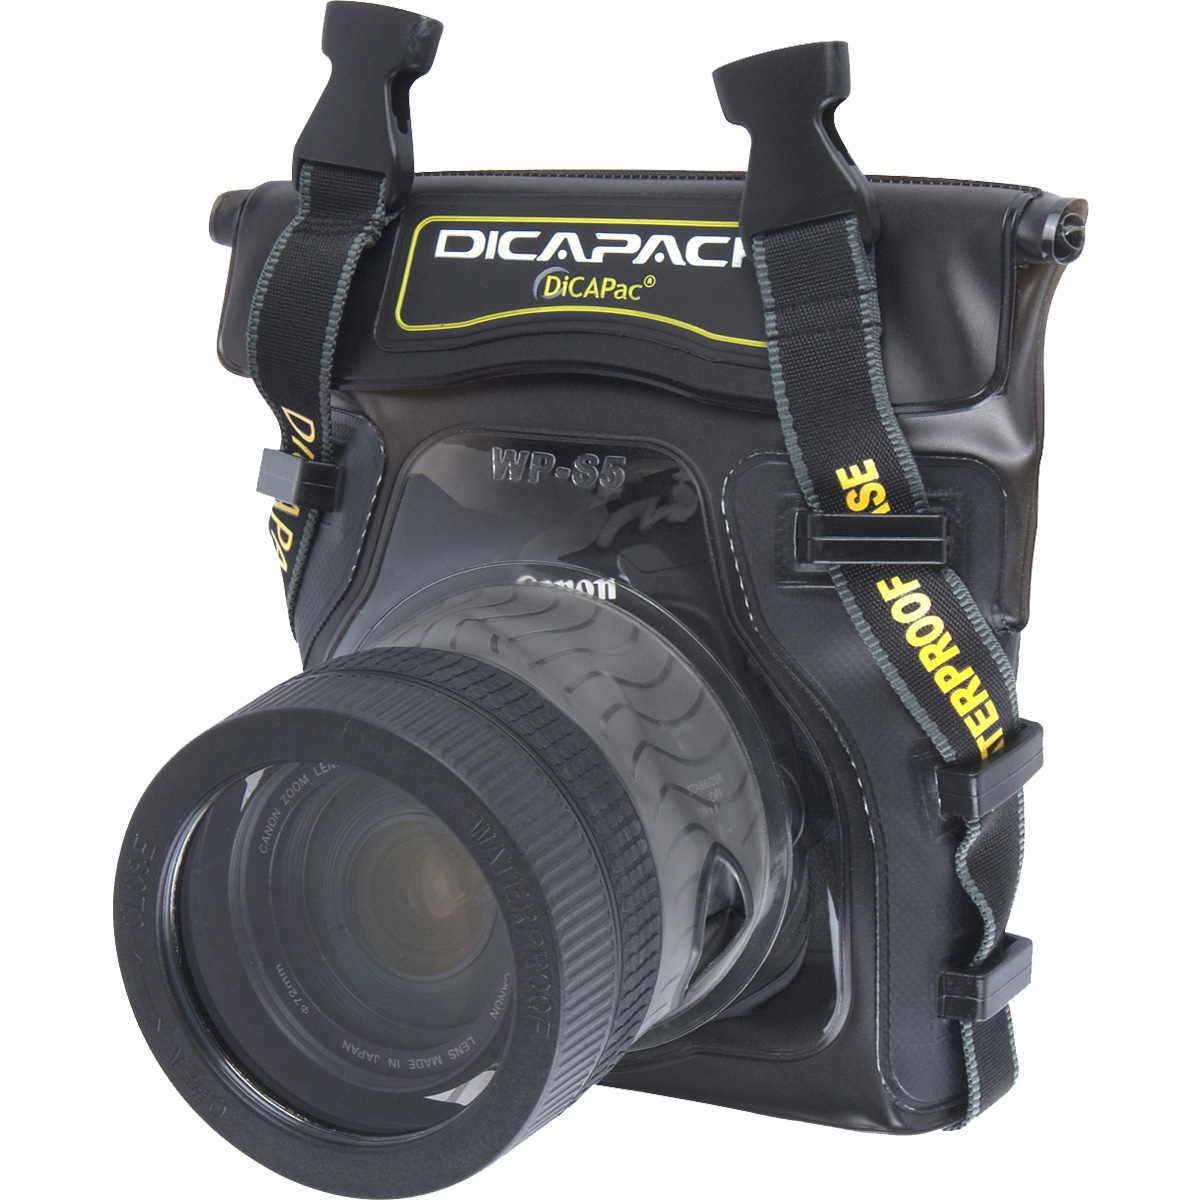 Review DiCAPac WP-S5 Waterproof Case for Digital SLR Cameras Before Special Offer Ends